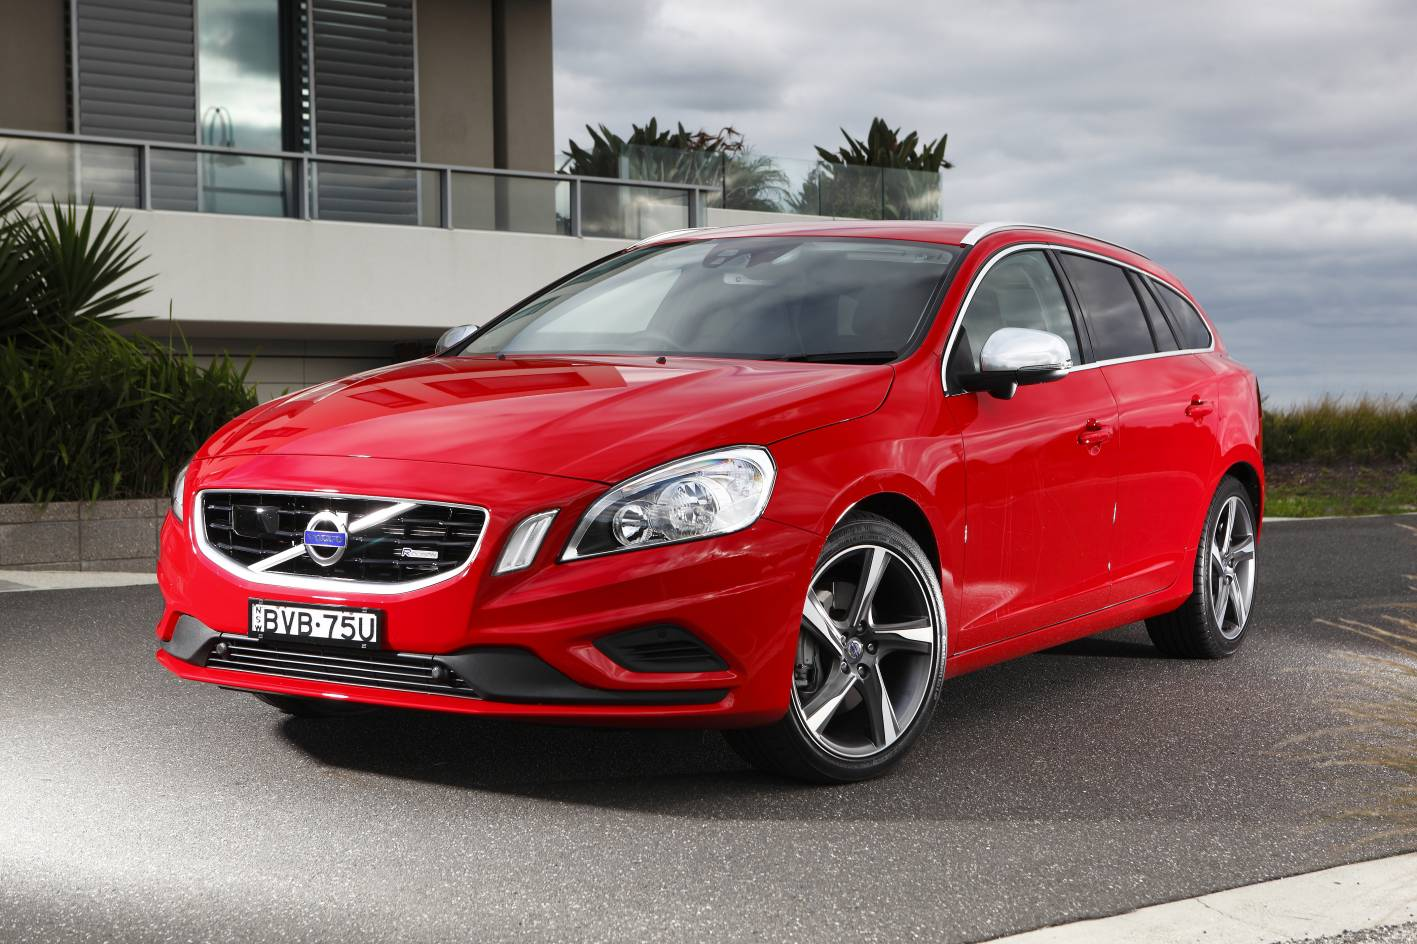 volvo v60 outbrakes rivals in adac test autoevolution. Black Bedroom Furniture Sets. Home Design Ideas